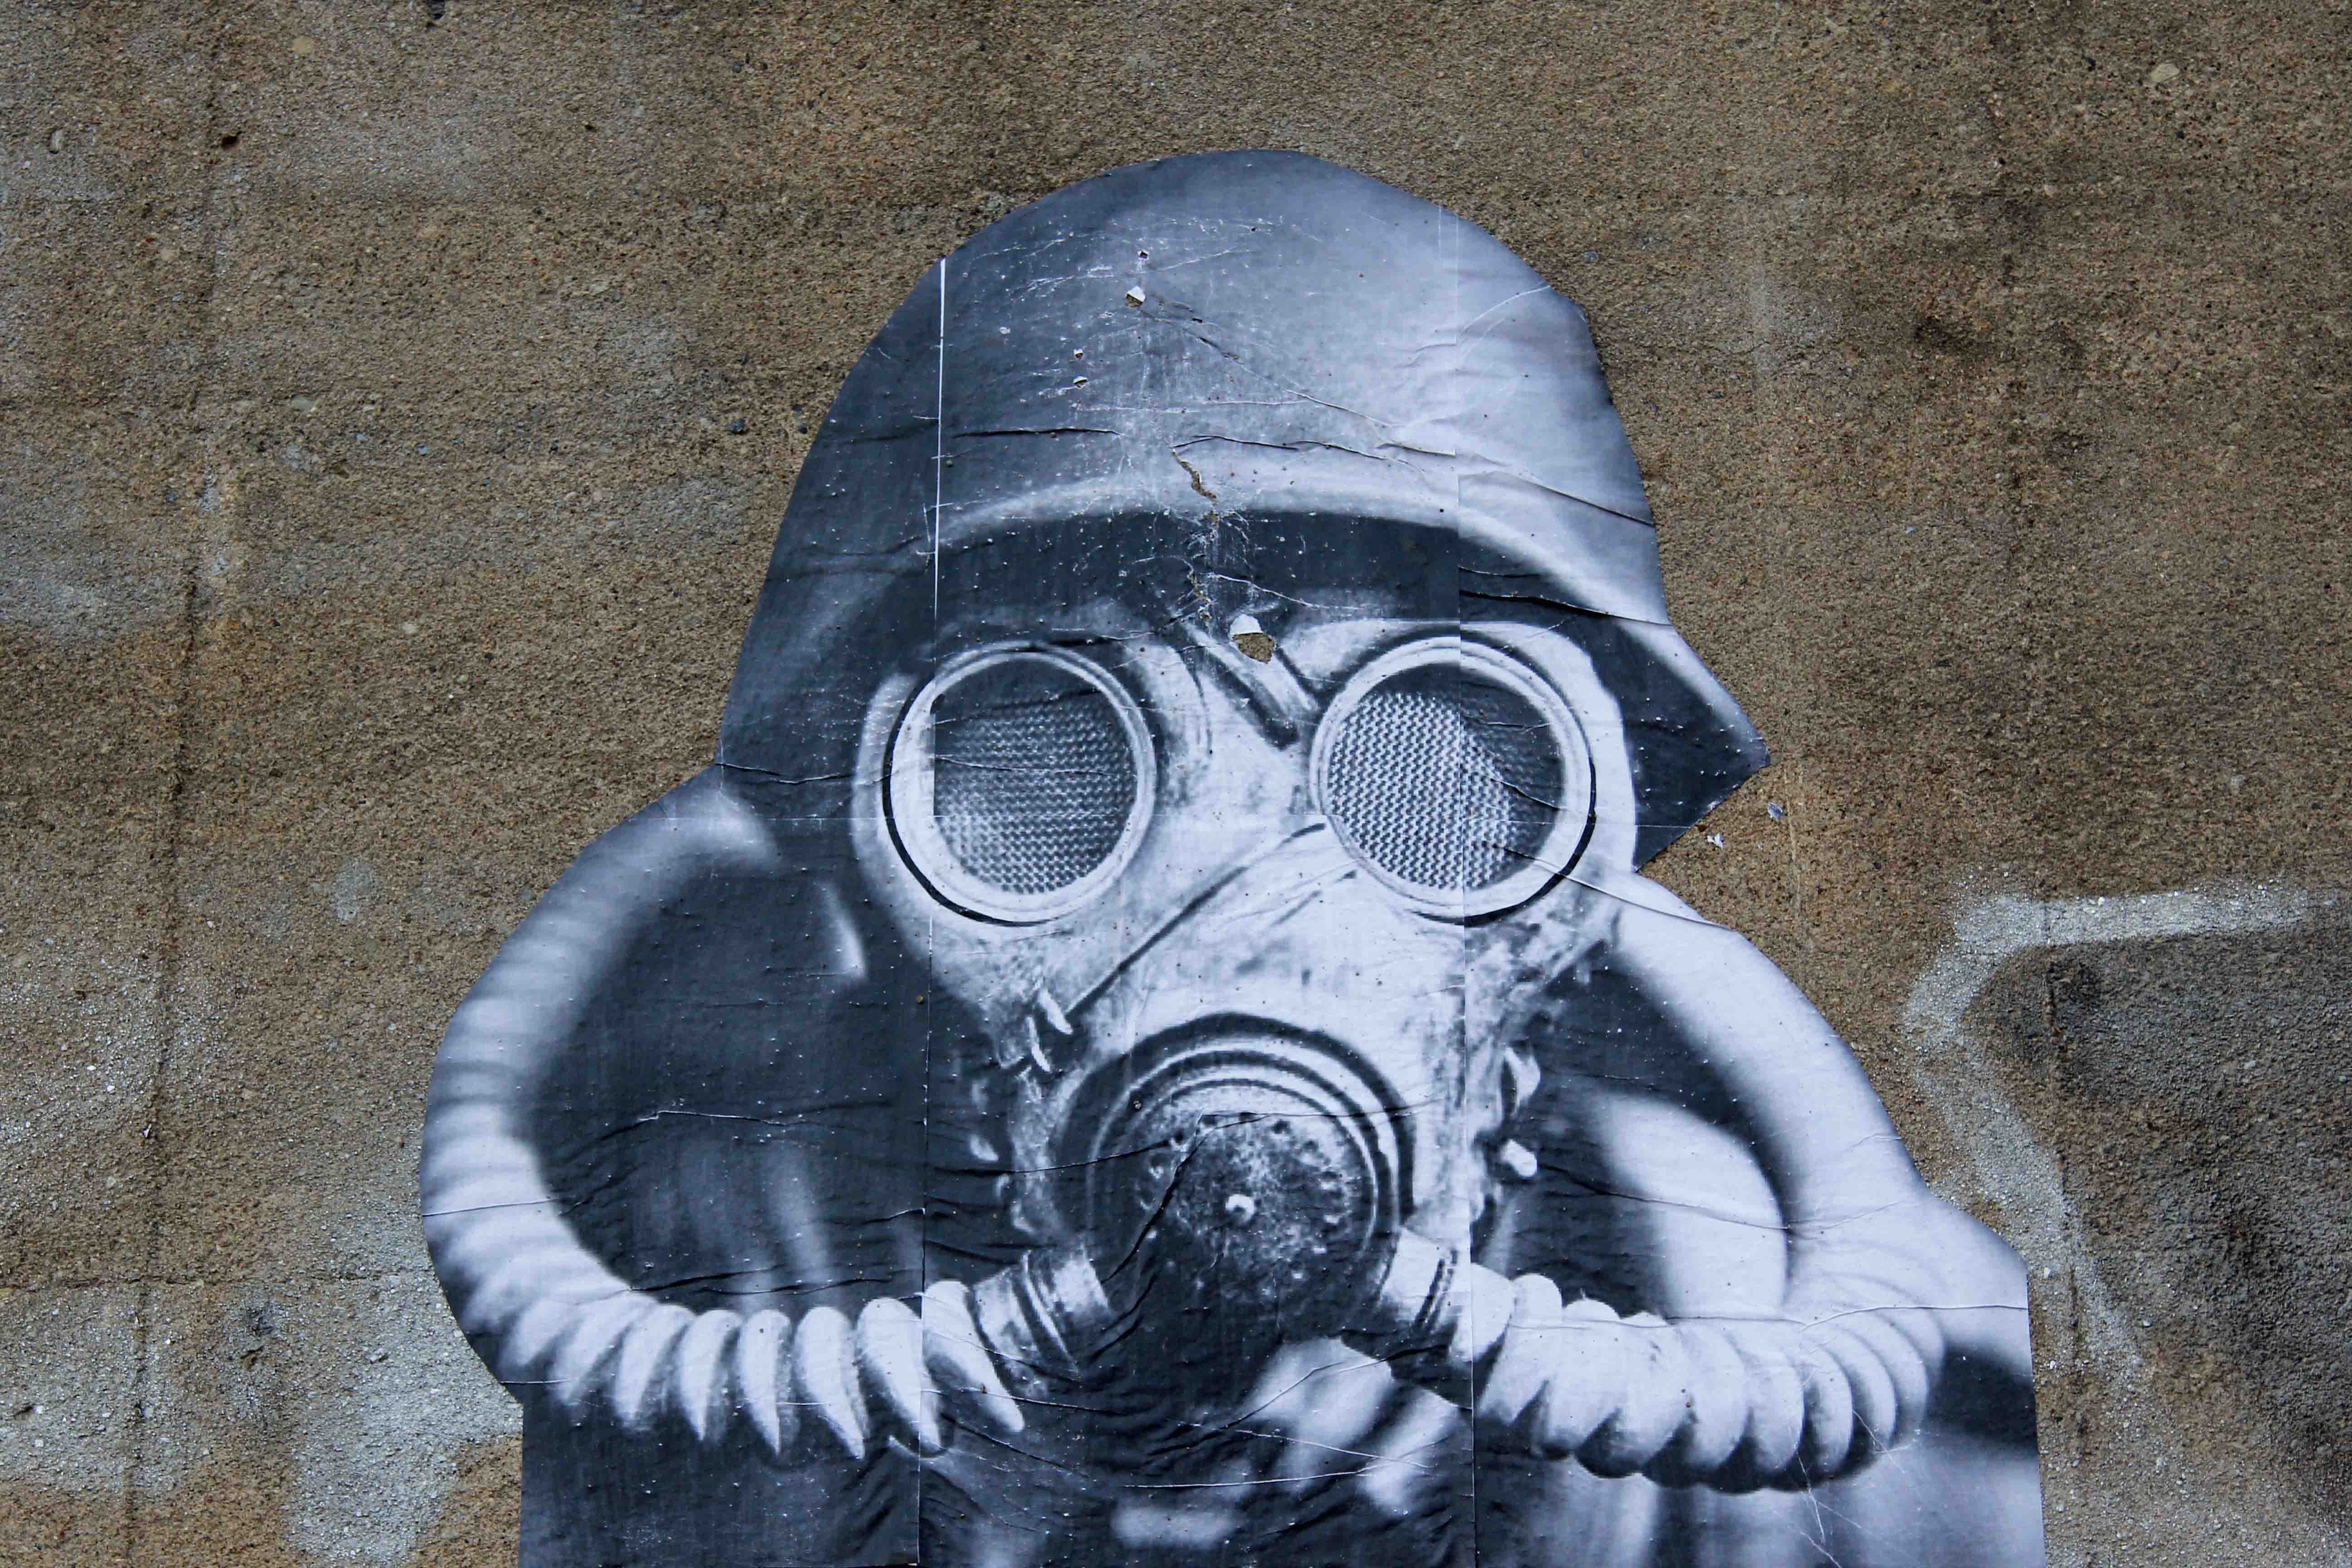 Masked Man - Street Art by SOON in Berlin